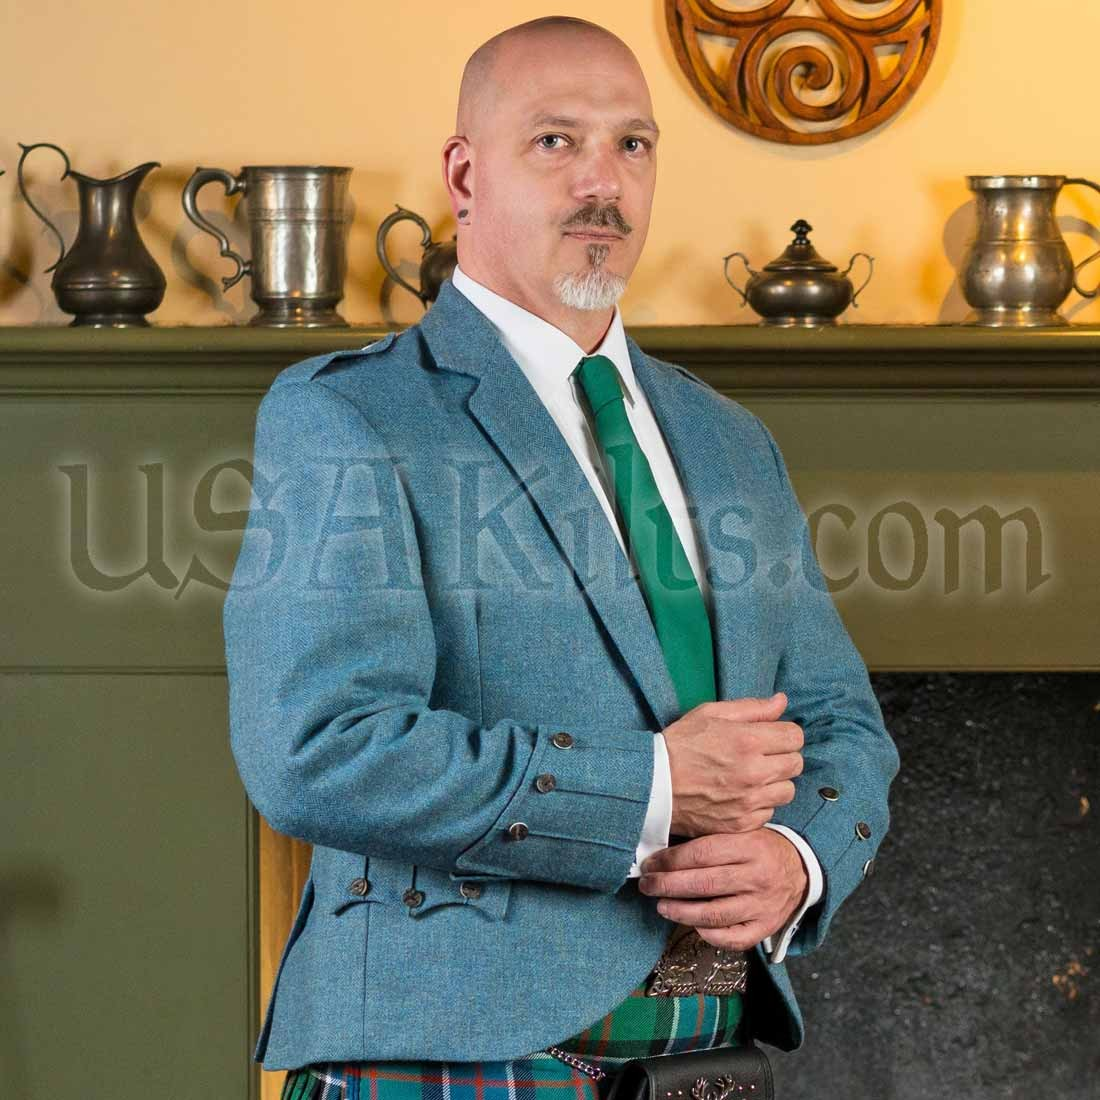 Tweed Jacket & Vest | Kilt Jackets | USA Kilts